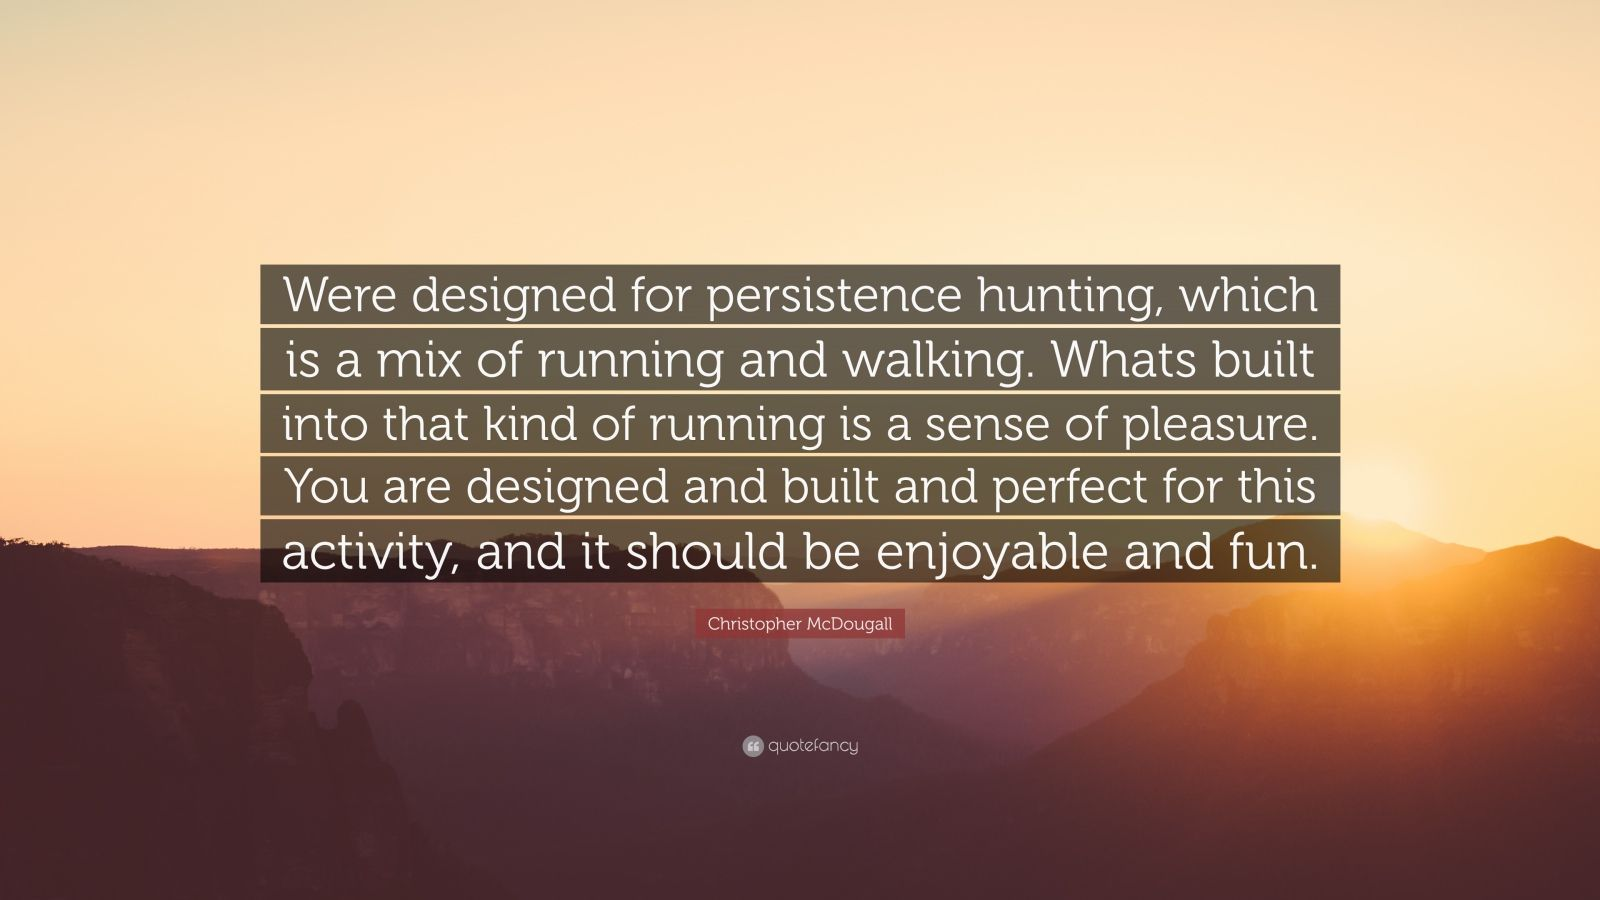 """Christopher McDougall Quote: """"Were designed for persistence hunting, which is a mix of running and walking. Whats built into that kind of running is a sense of pleasure. You are designed and built and perfect for this activity, and it should be enjoyable and fun."""""""